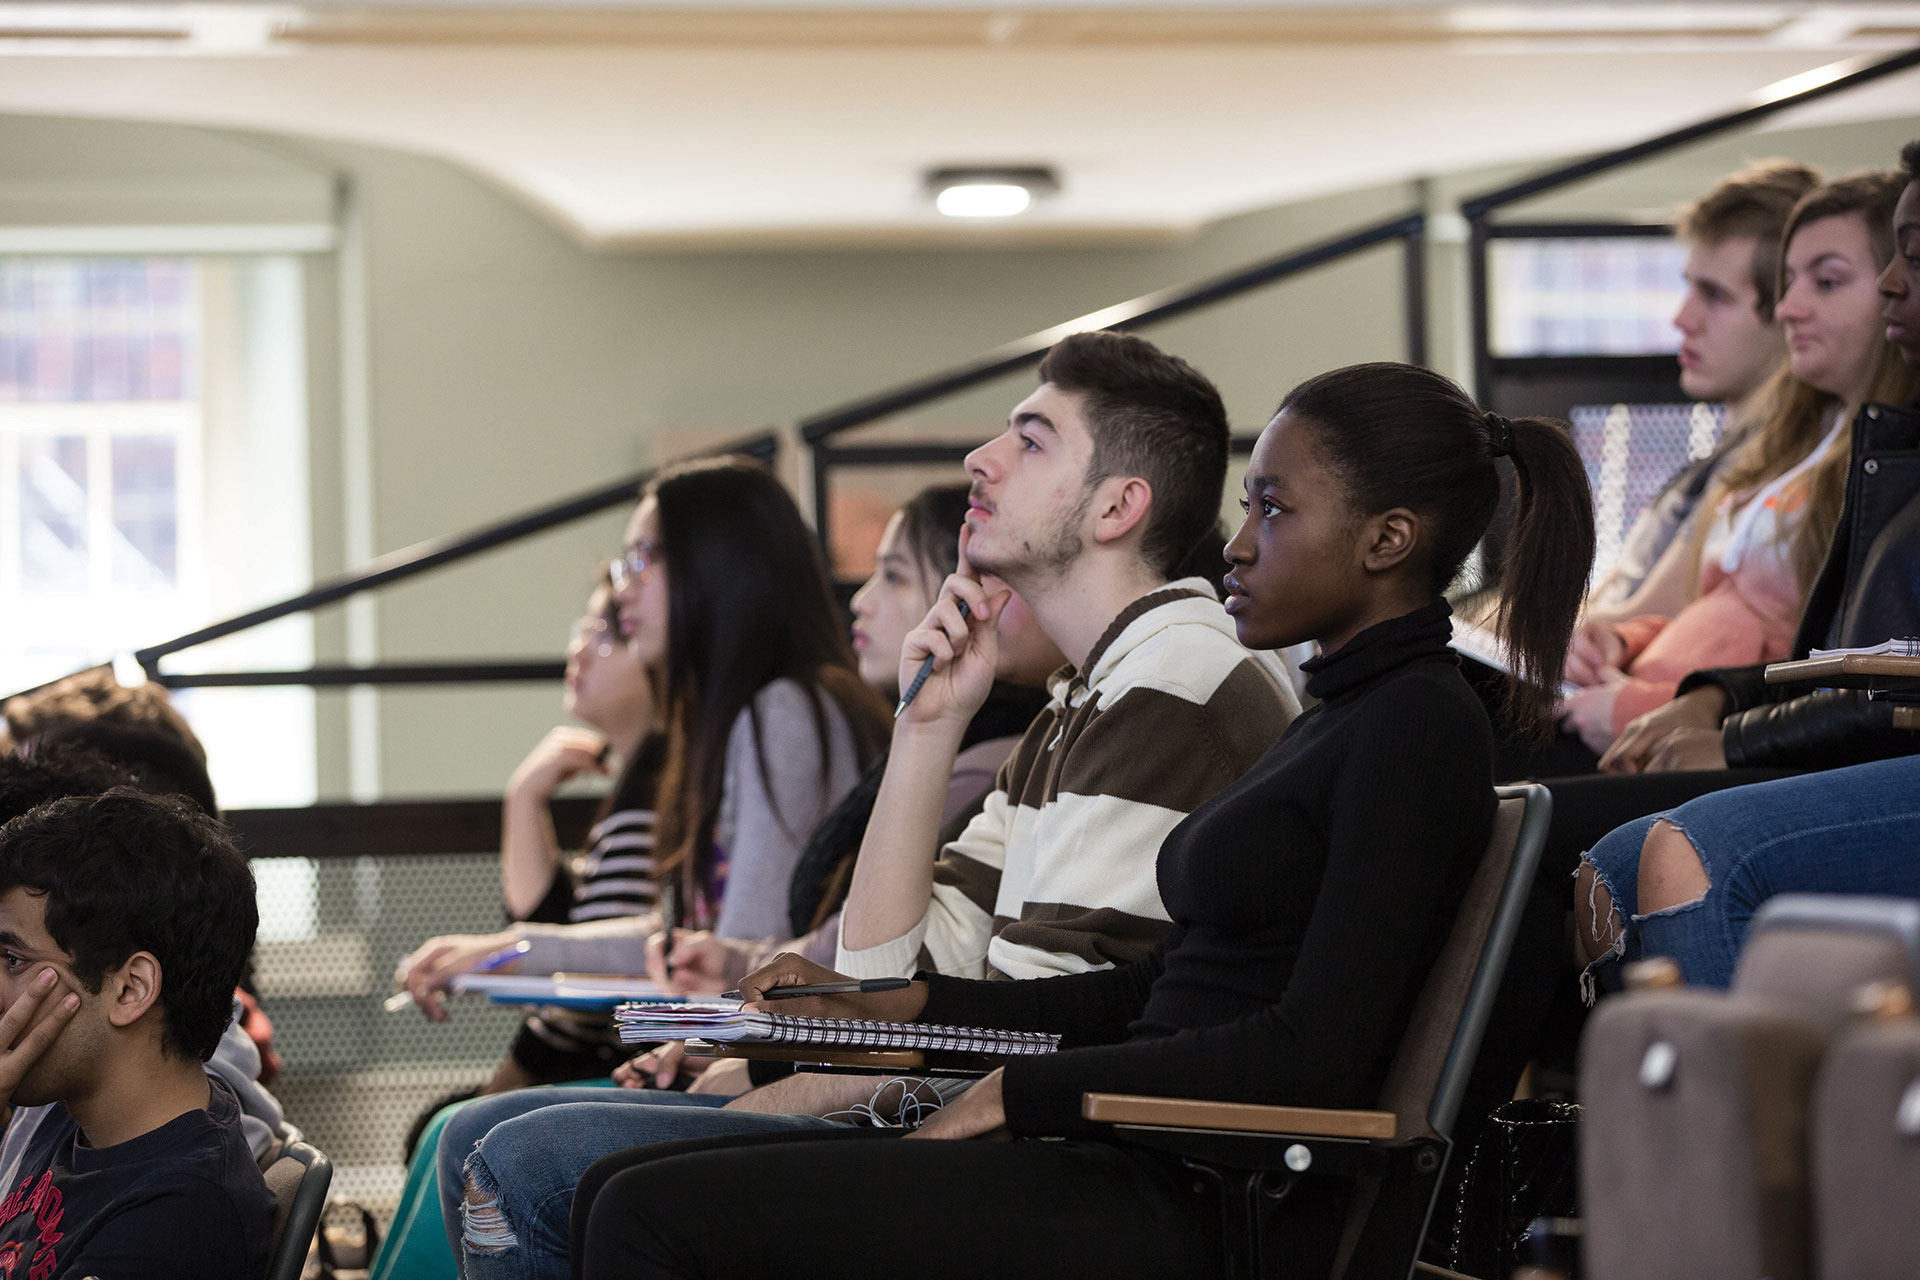 Mixed group of students in a lecture theatre